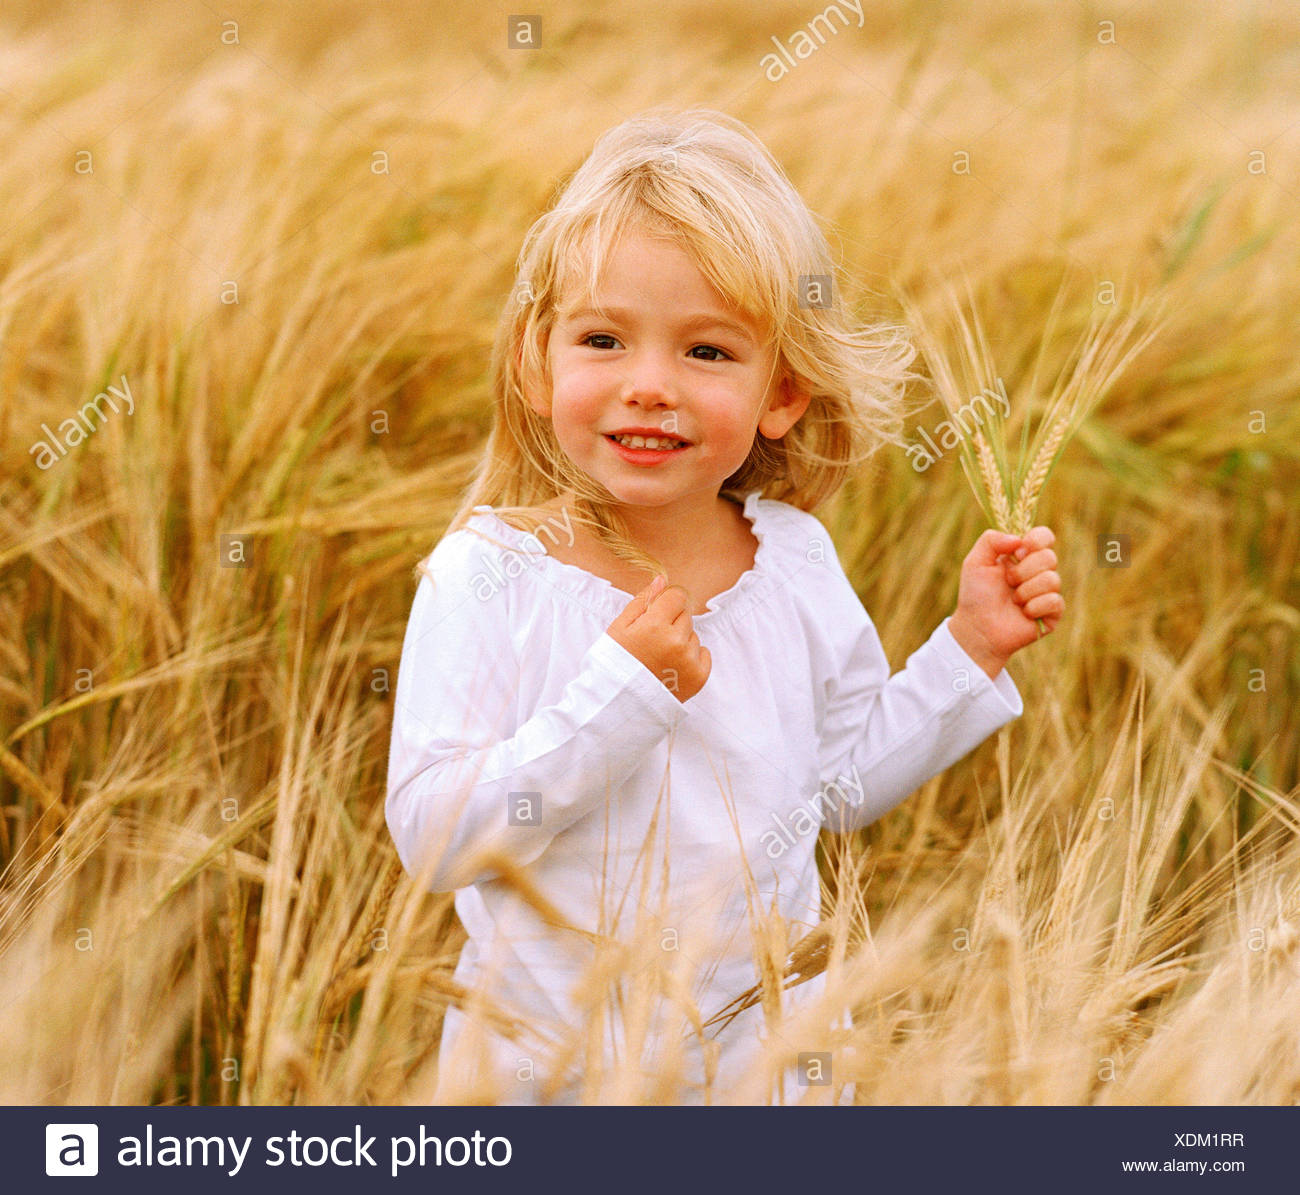 Children. Little blonde haired girl outdoors in wheat field. - Stock Image